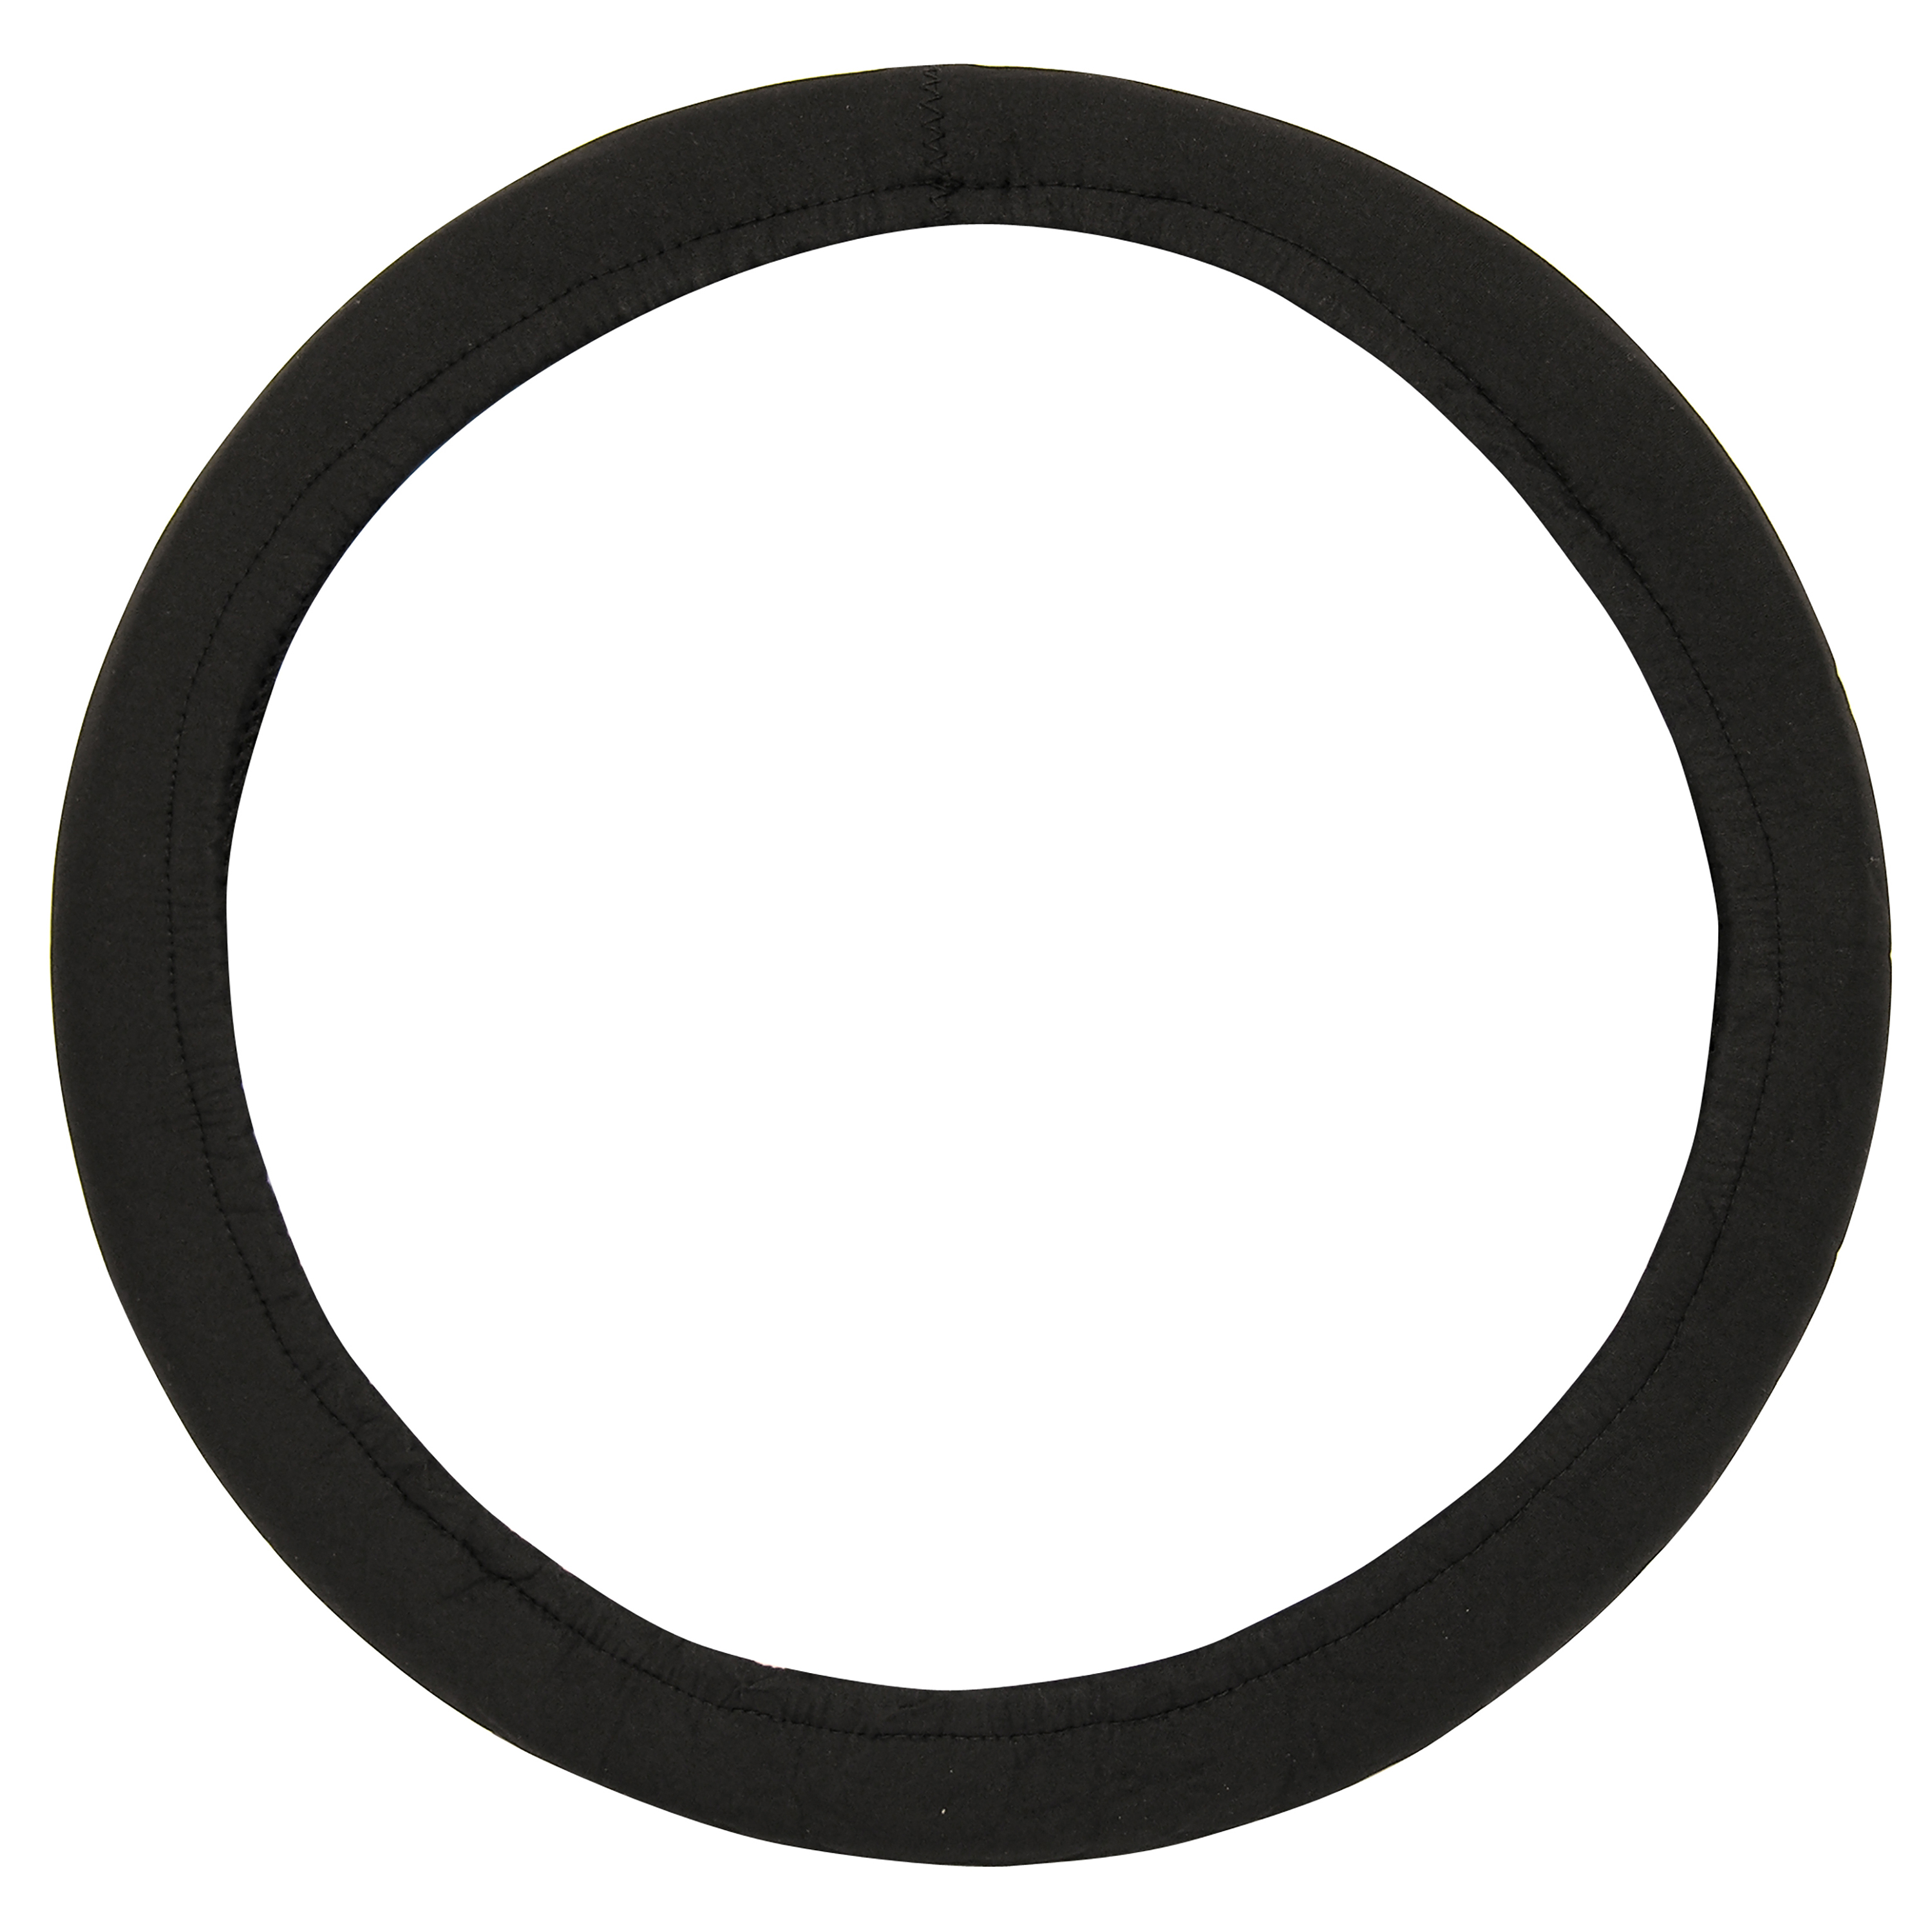 Auto Drive Neoprene Steering Wheel Cover, Black